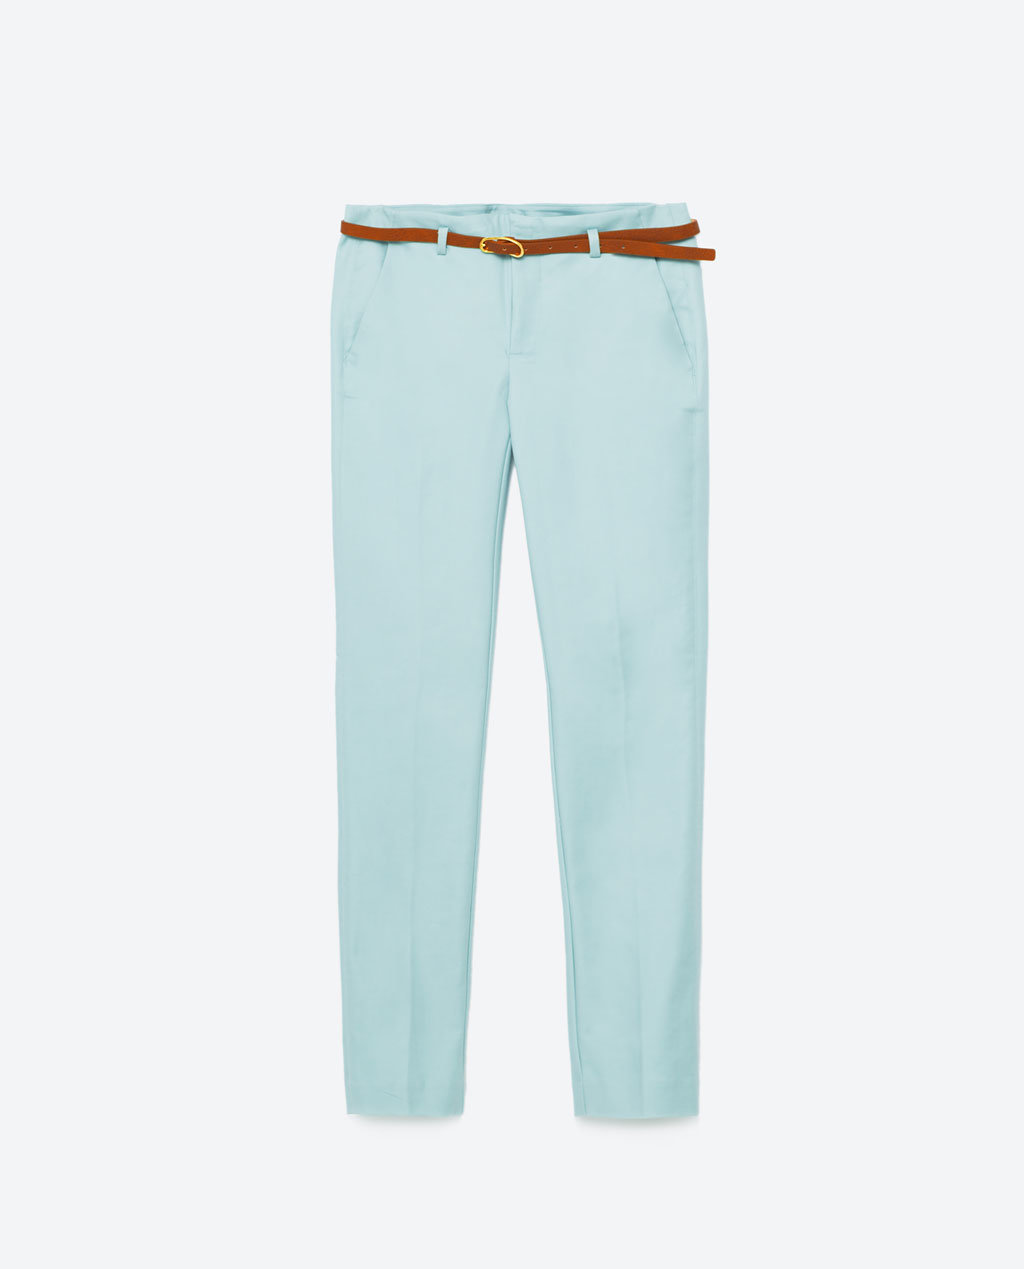 Colorful Fashioned Women Leisure Trouser